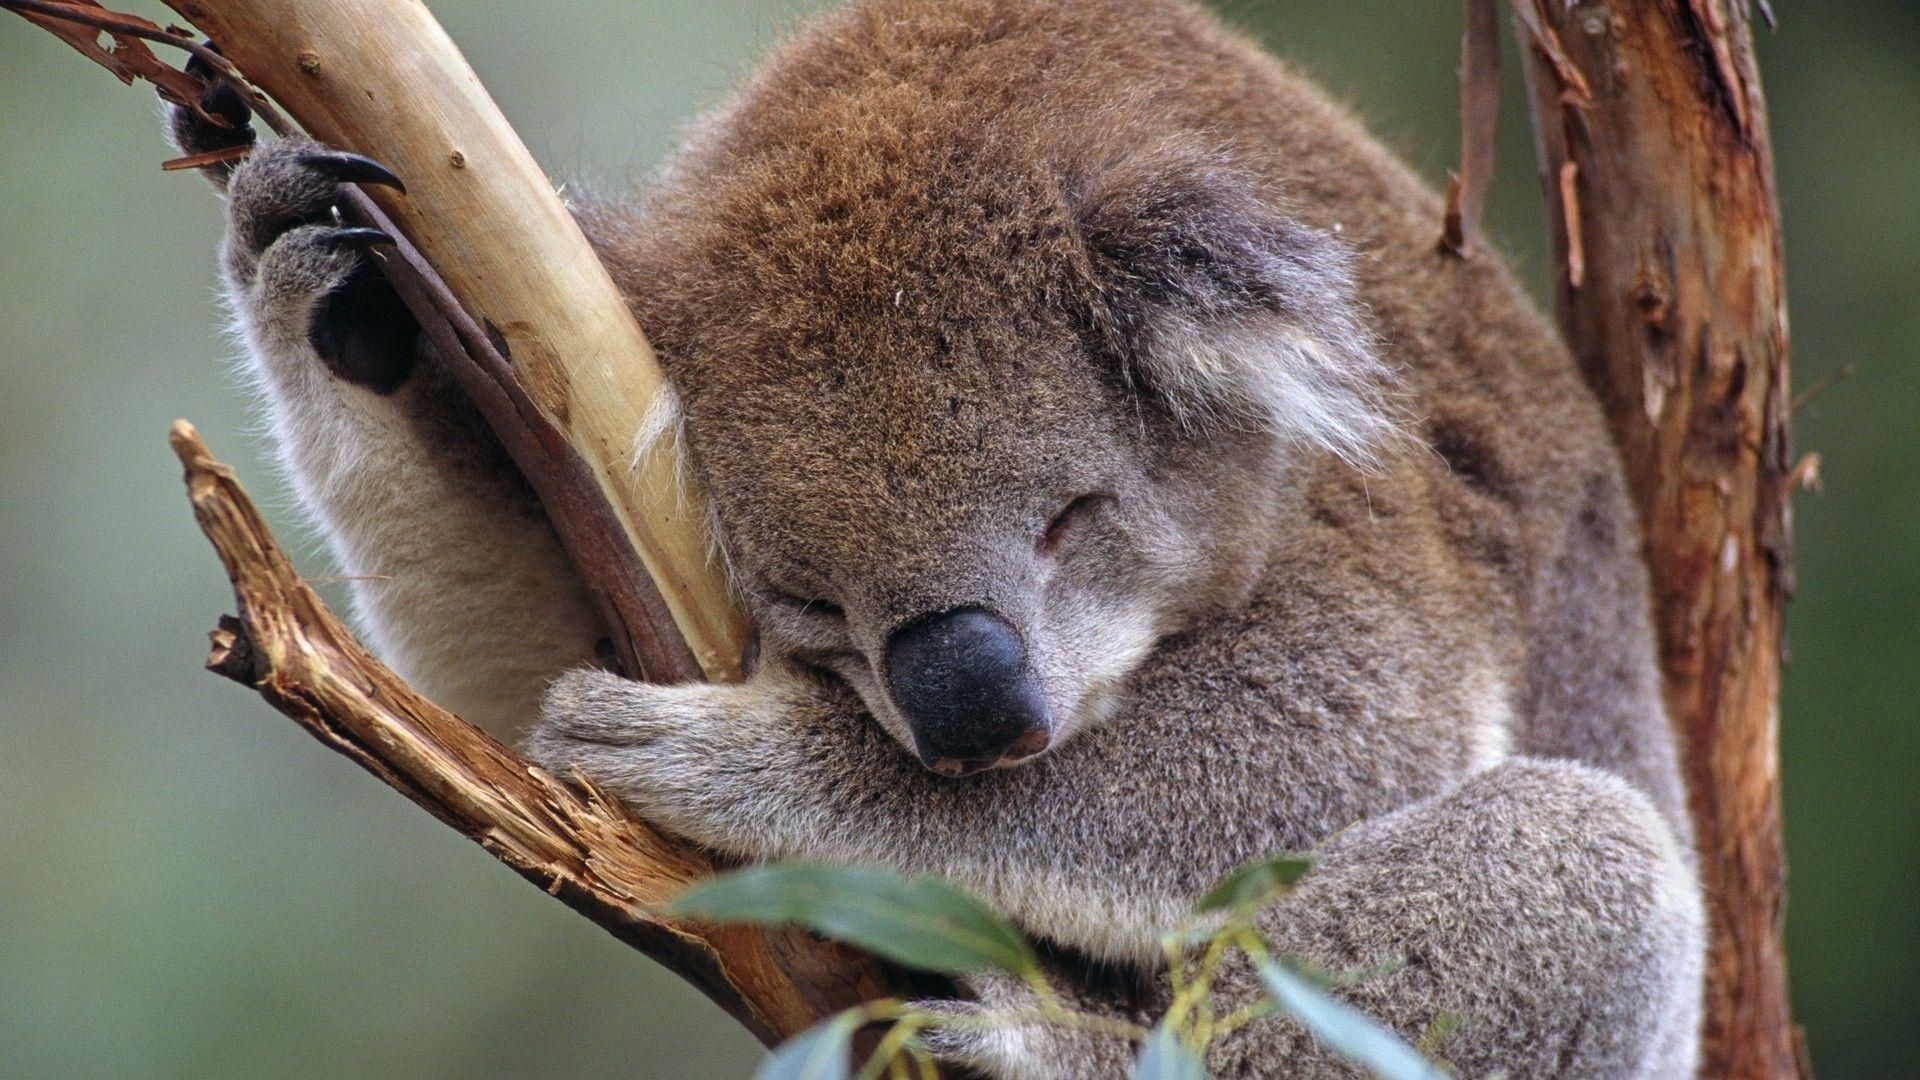 Res: 1920x1080, Koala HD Wallpapers and Backgrounds (7) http://www.urdunewtrend.